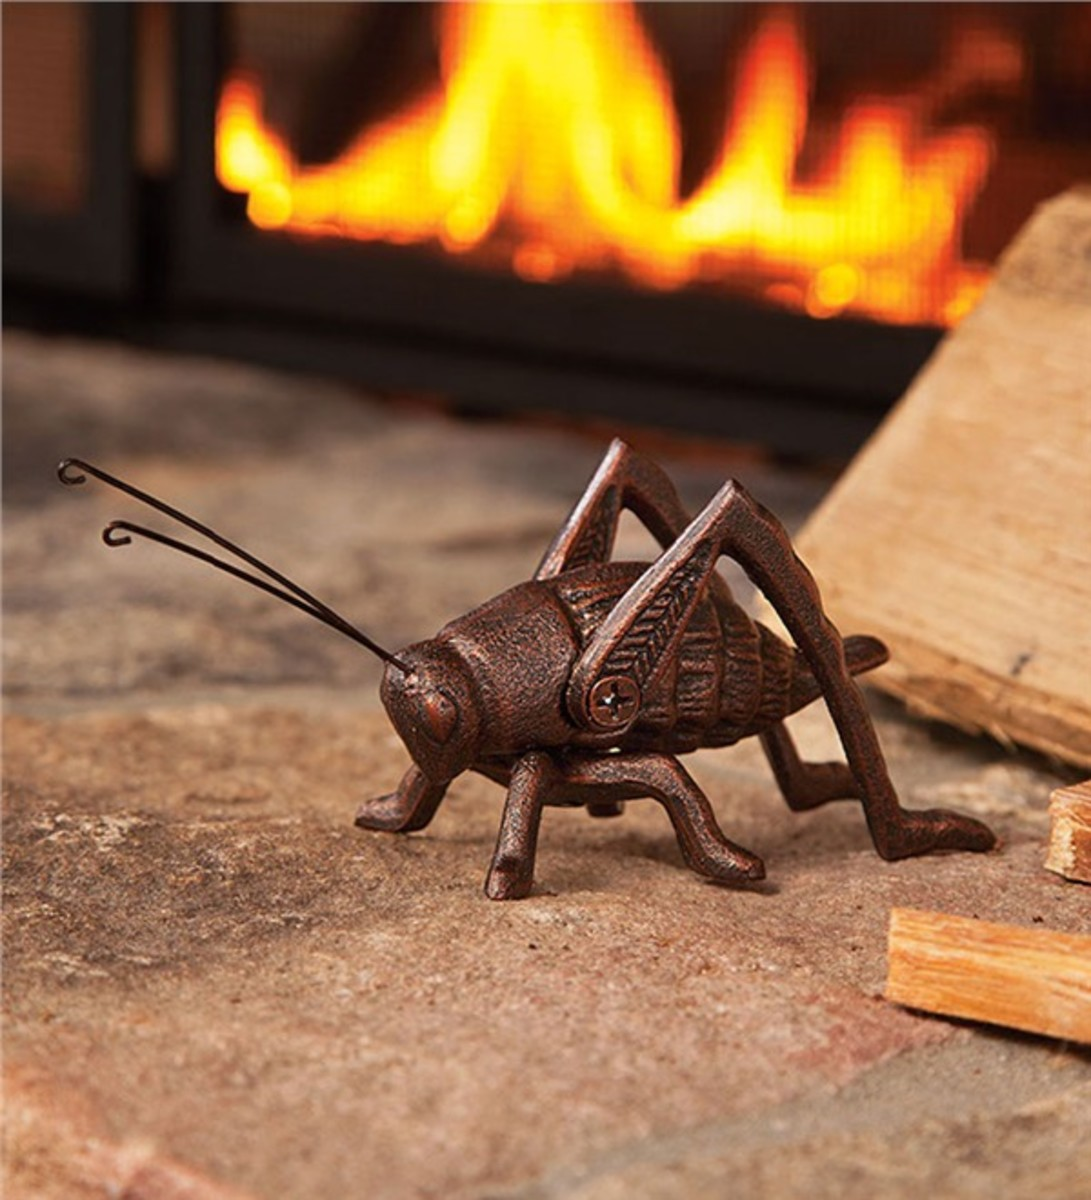 A modern example of a cast iron cricket for the hearthside.